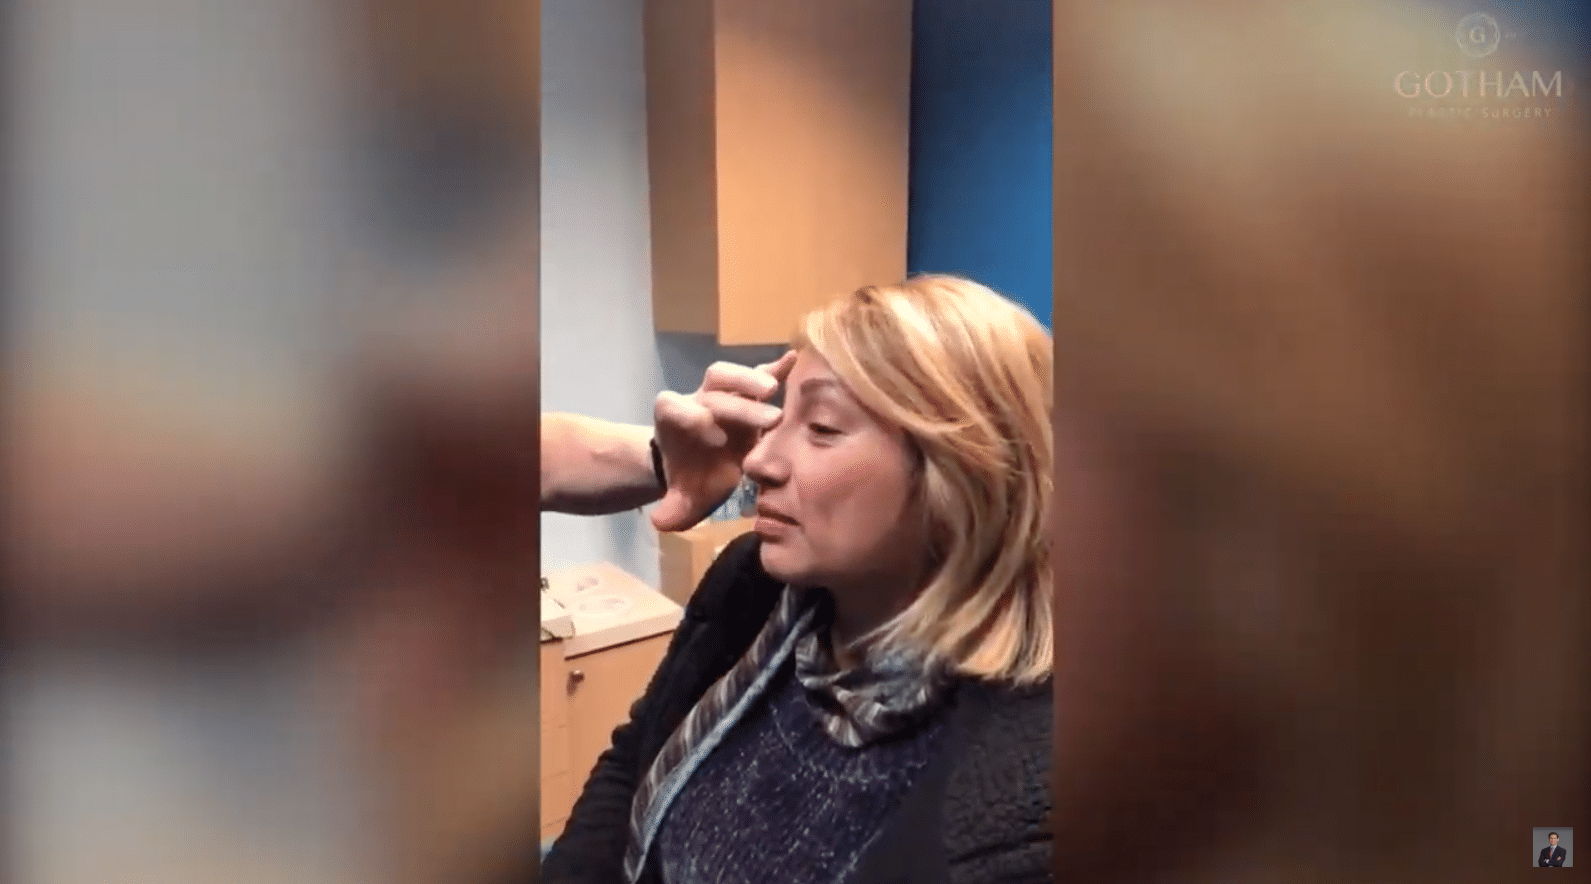 Patient Testimonial for a Rhinoplasty Procedure with Dr. Miller